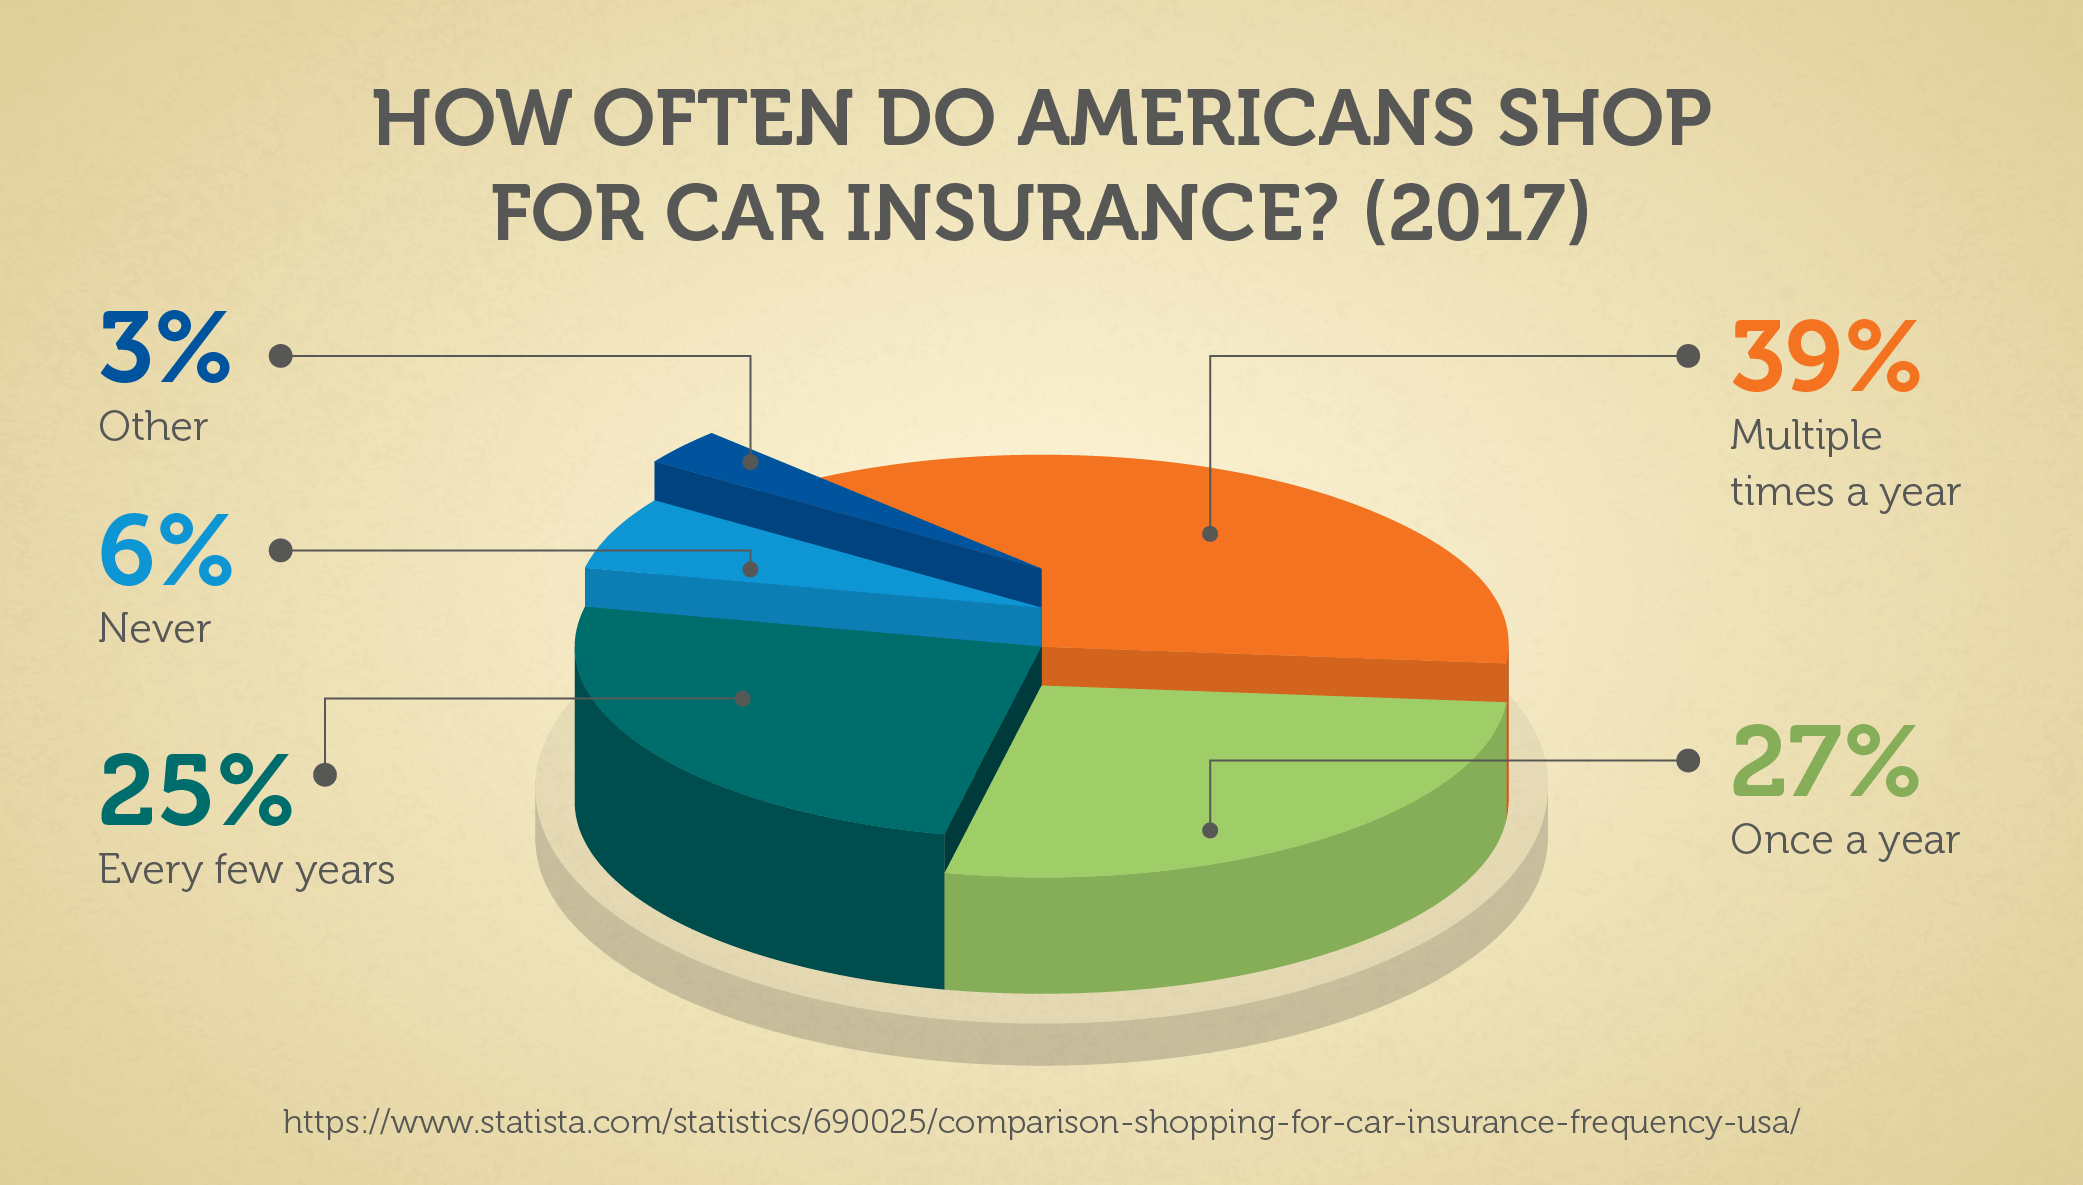 How Often Do Americans Shop for Car Insurance? (2017)